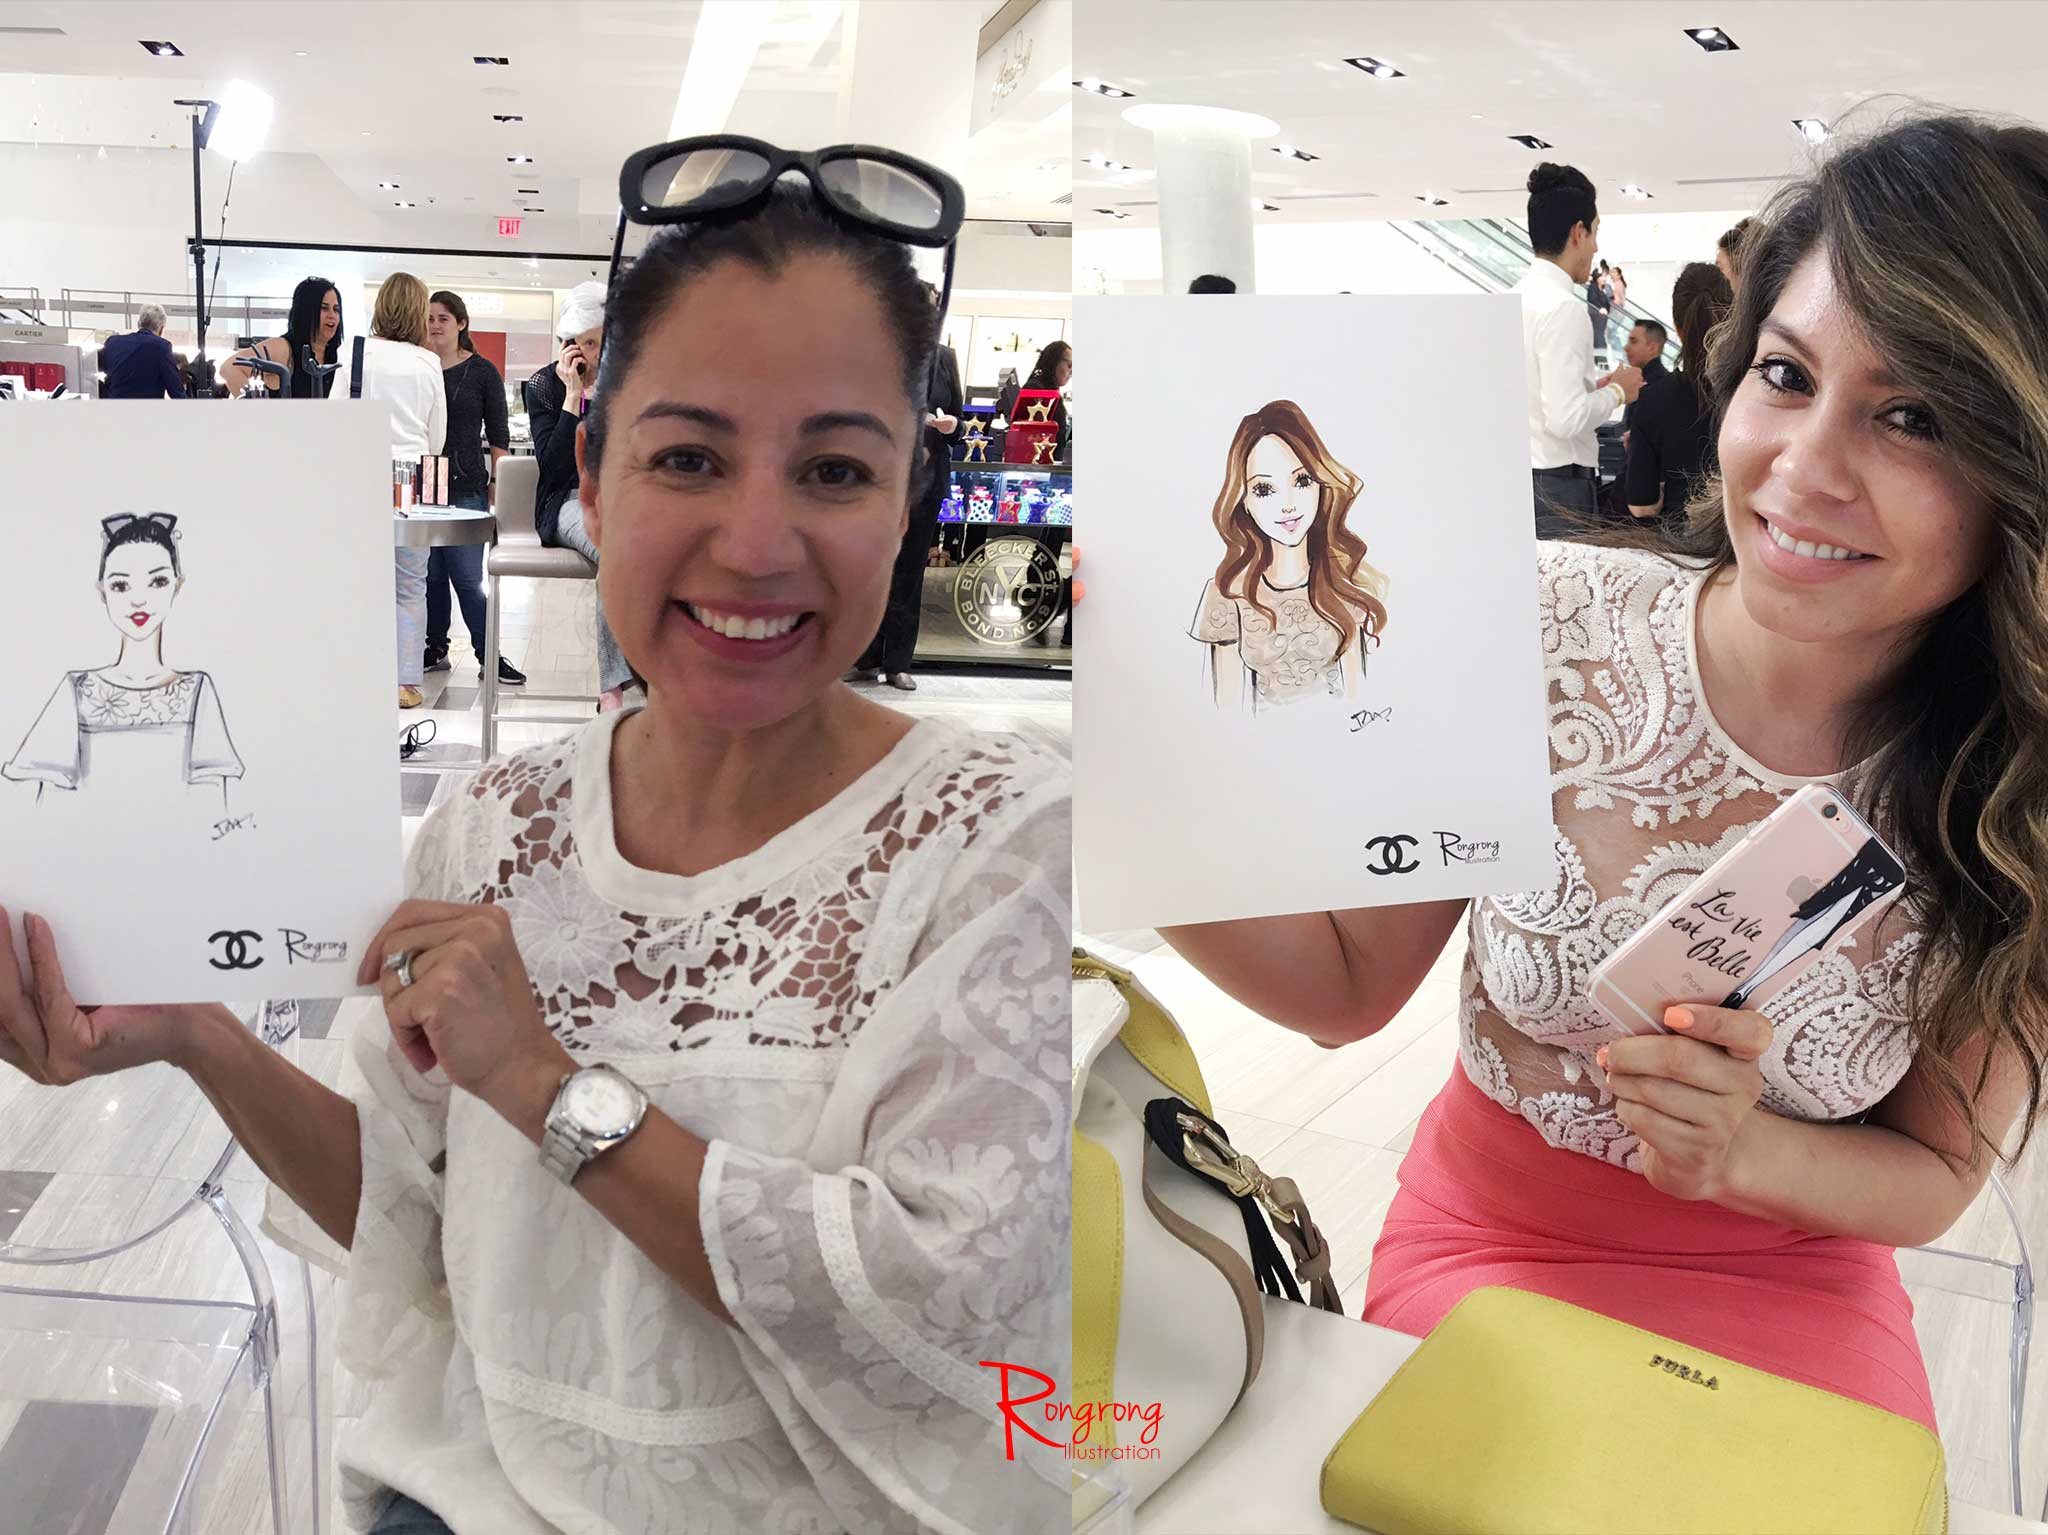 Live-sketching event for Chanel beauty by Houston fashion illustrator Rongrong DeVoe